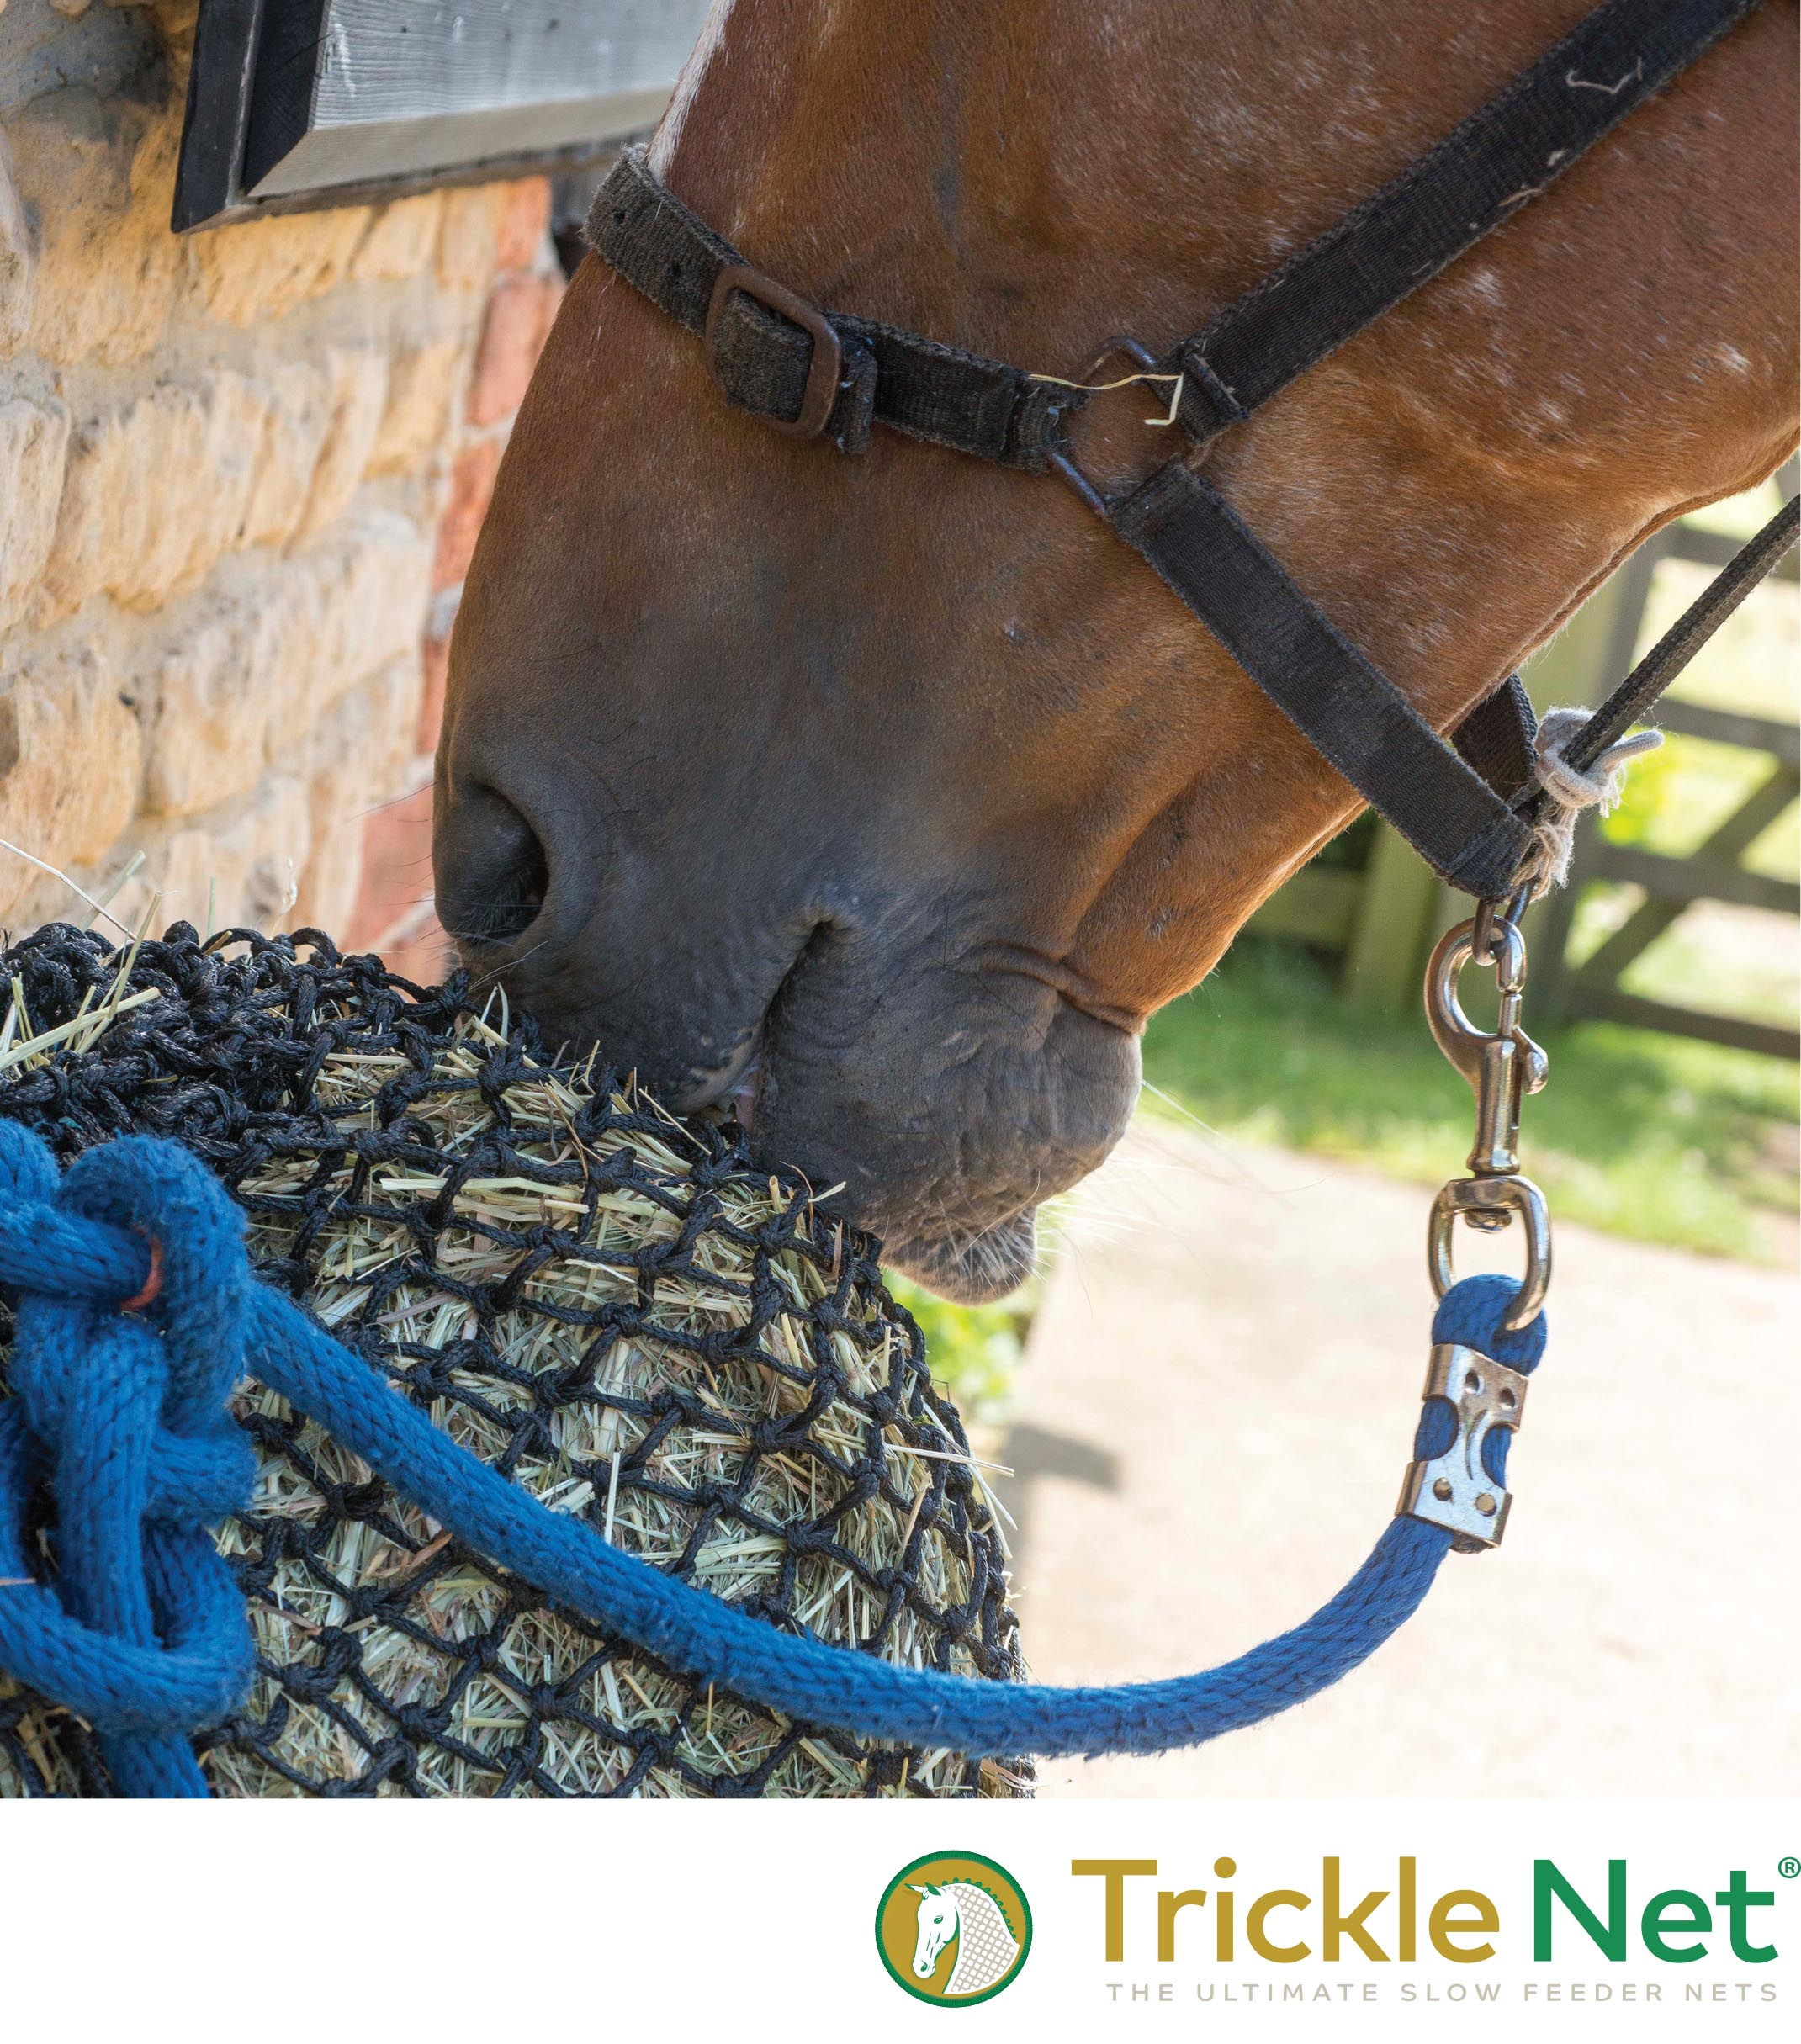 Horse with Trickle Net